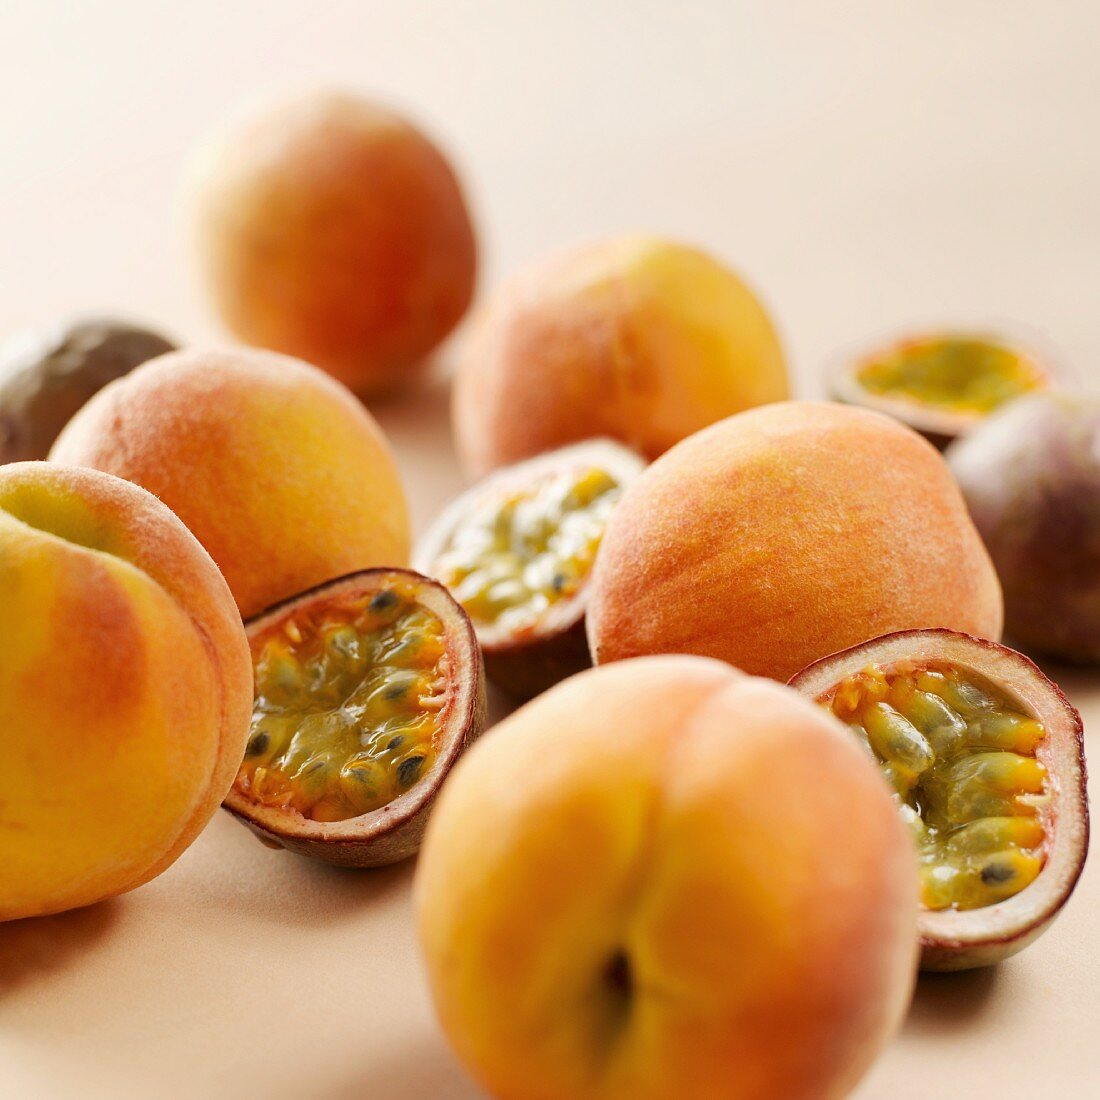 Red passion fruits and peaches